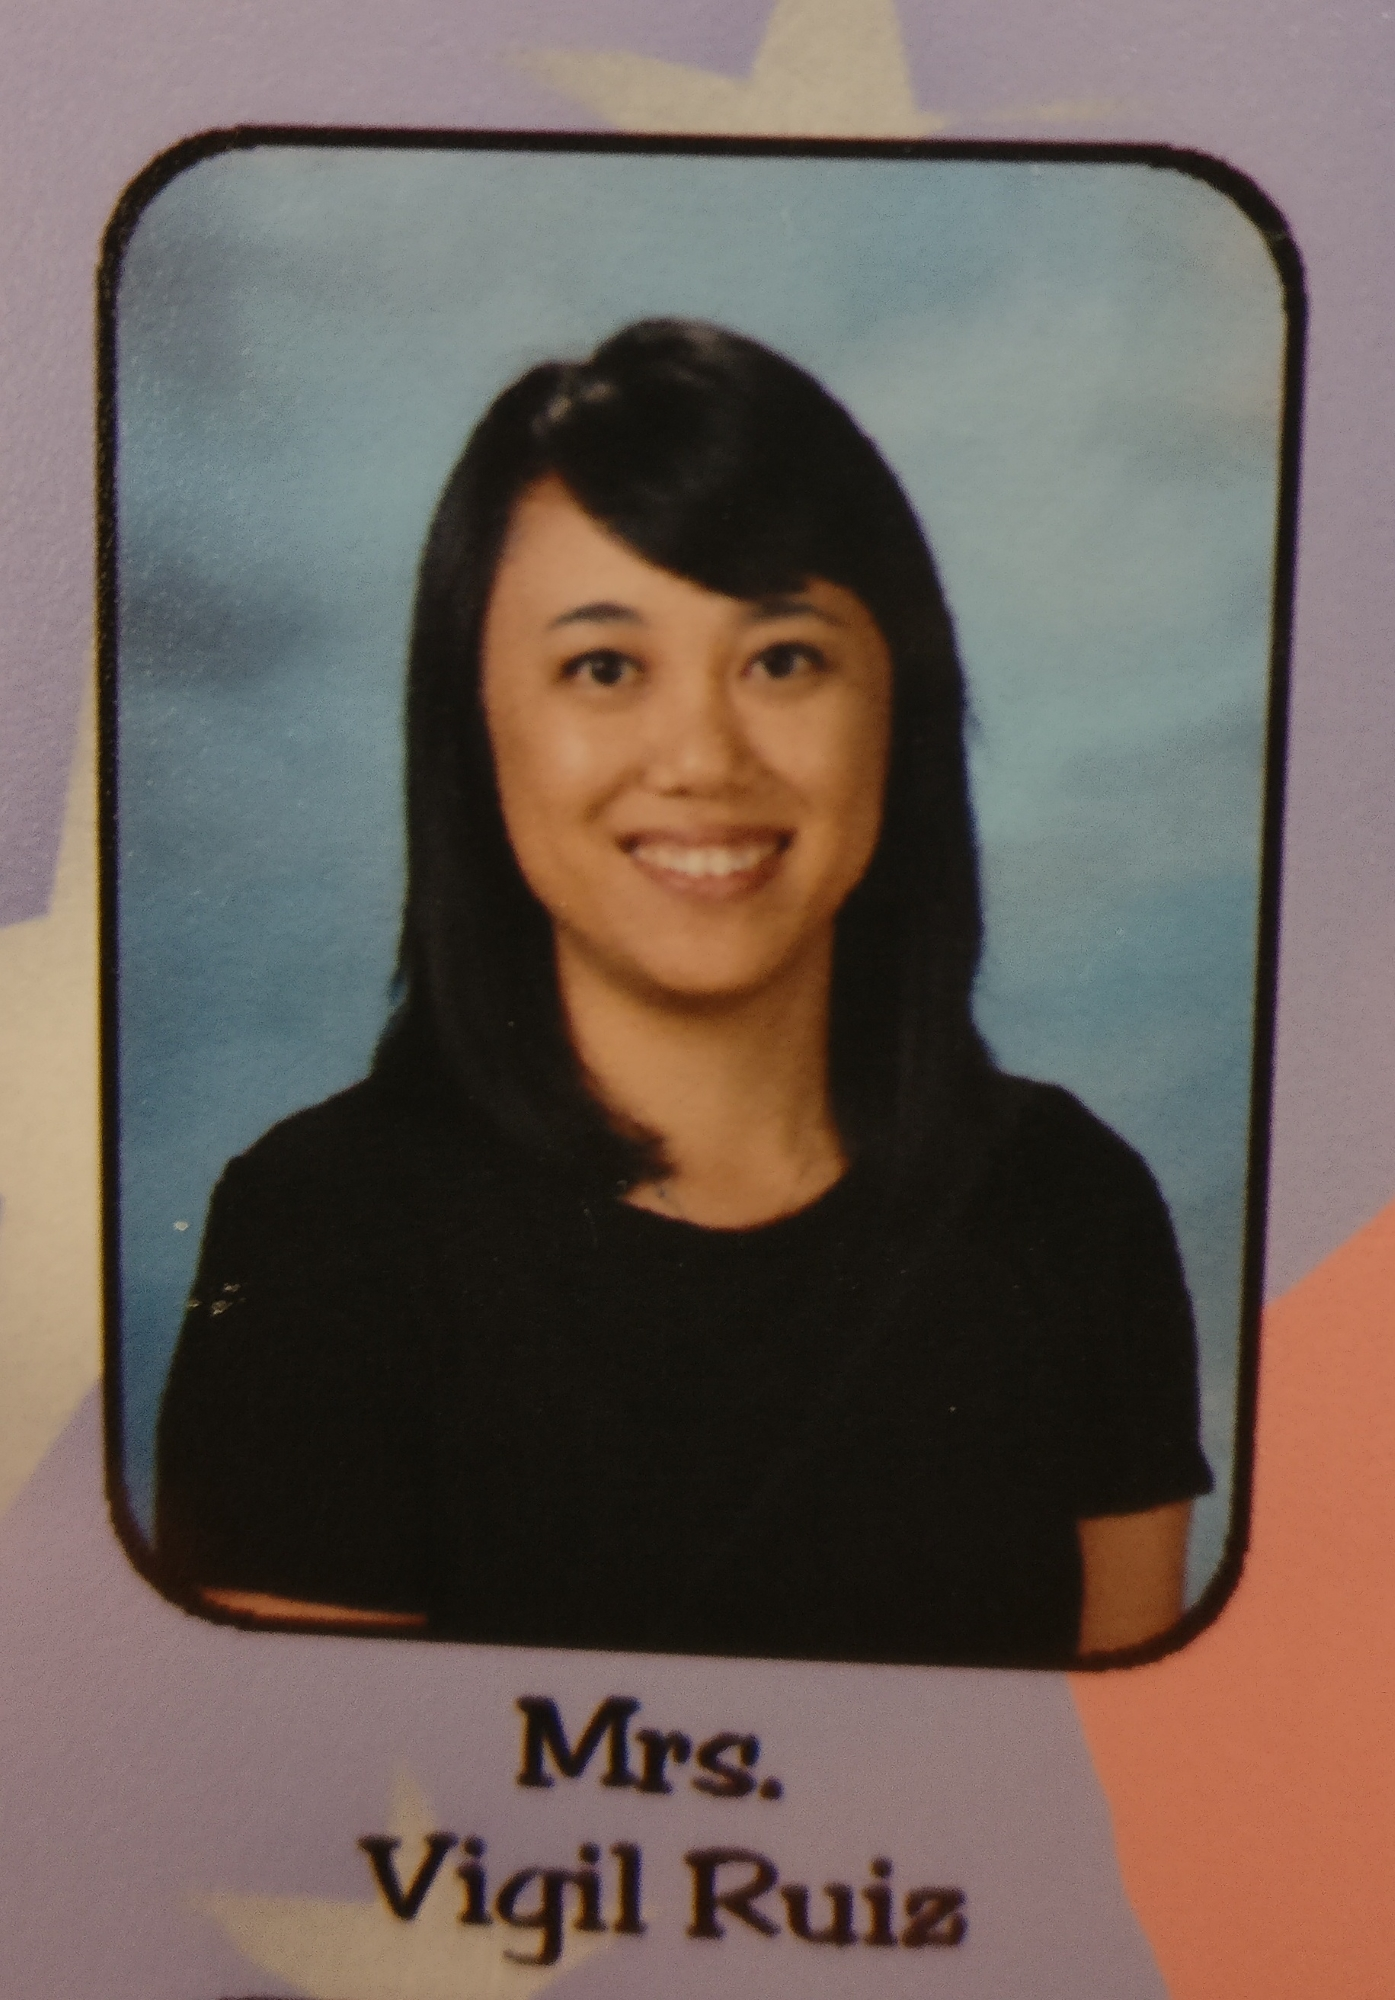 A school photo of Mrs. Vigil-Ruiz